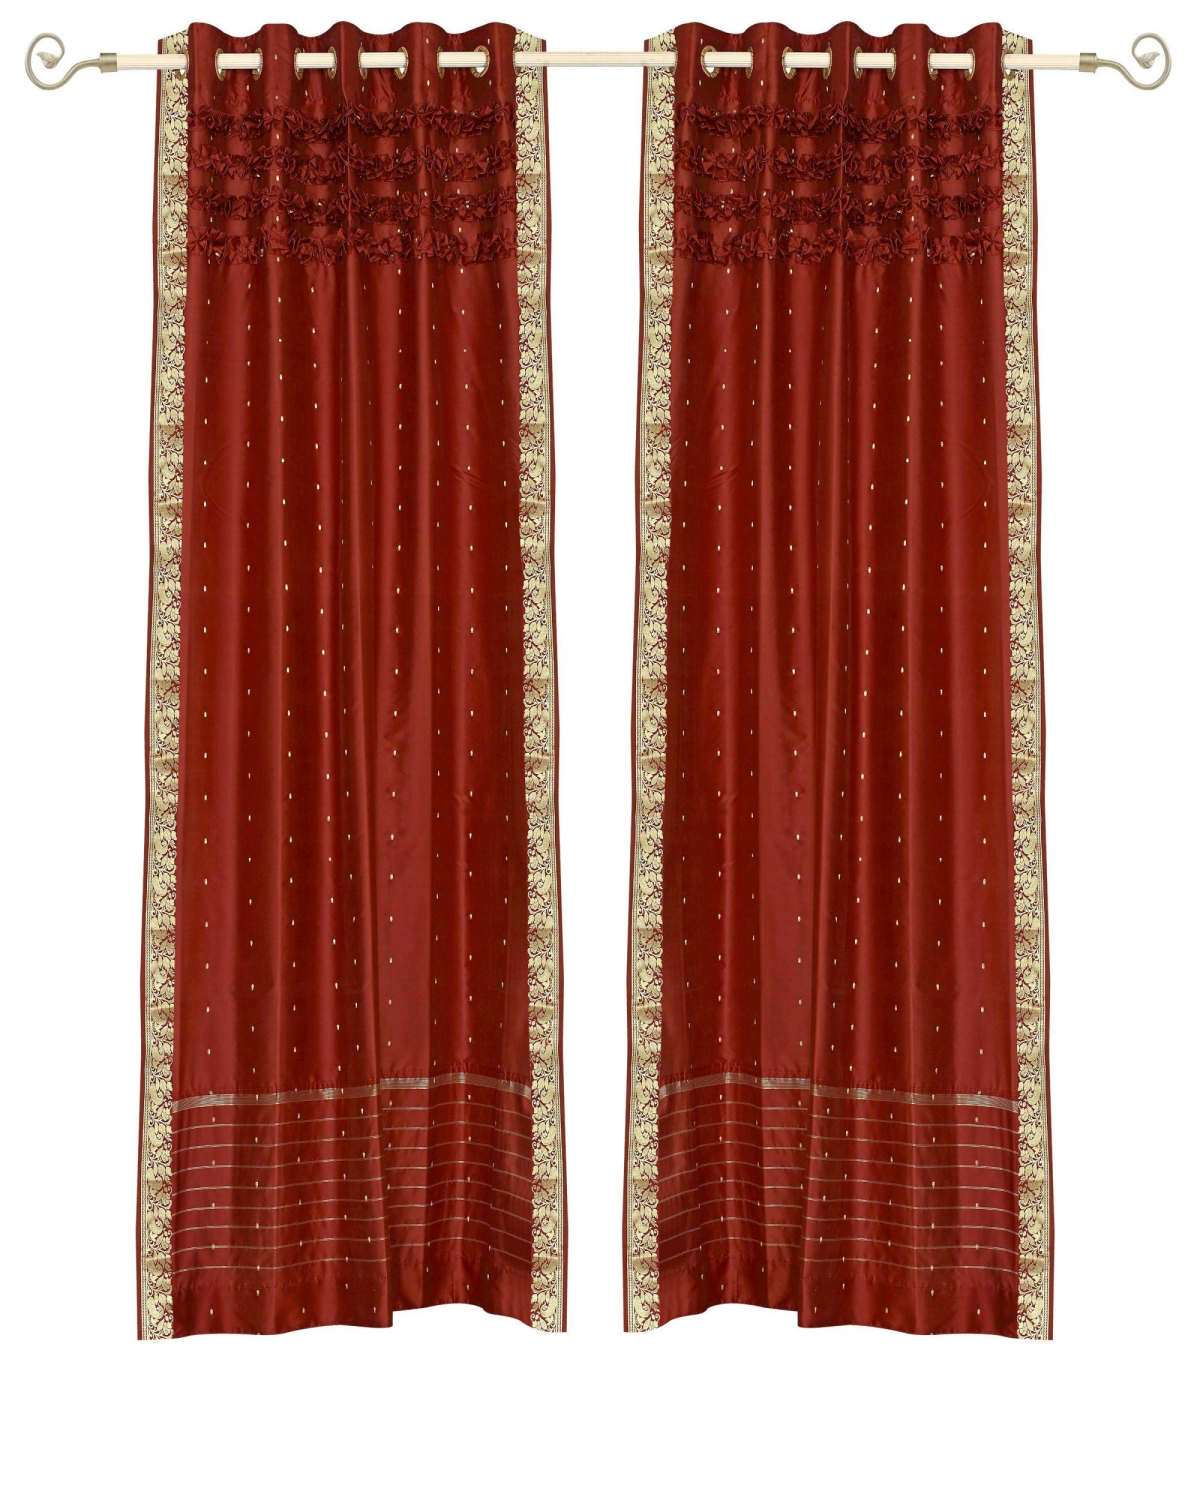 Rust Hand Crafted Grommet Top  Sheer Sari Curtain  Drape  Panel   - 43W x 108L - Piece